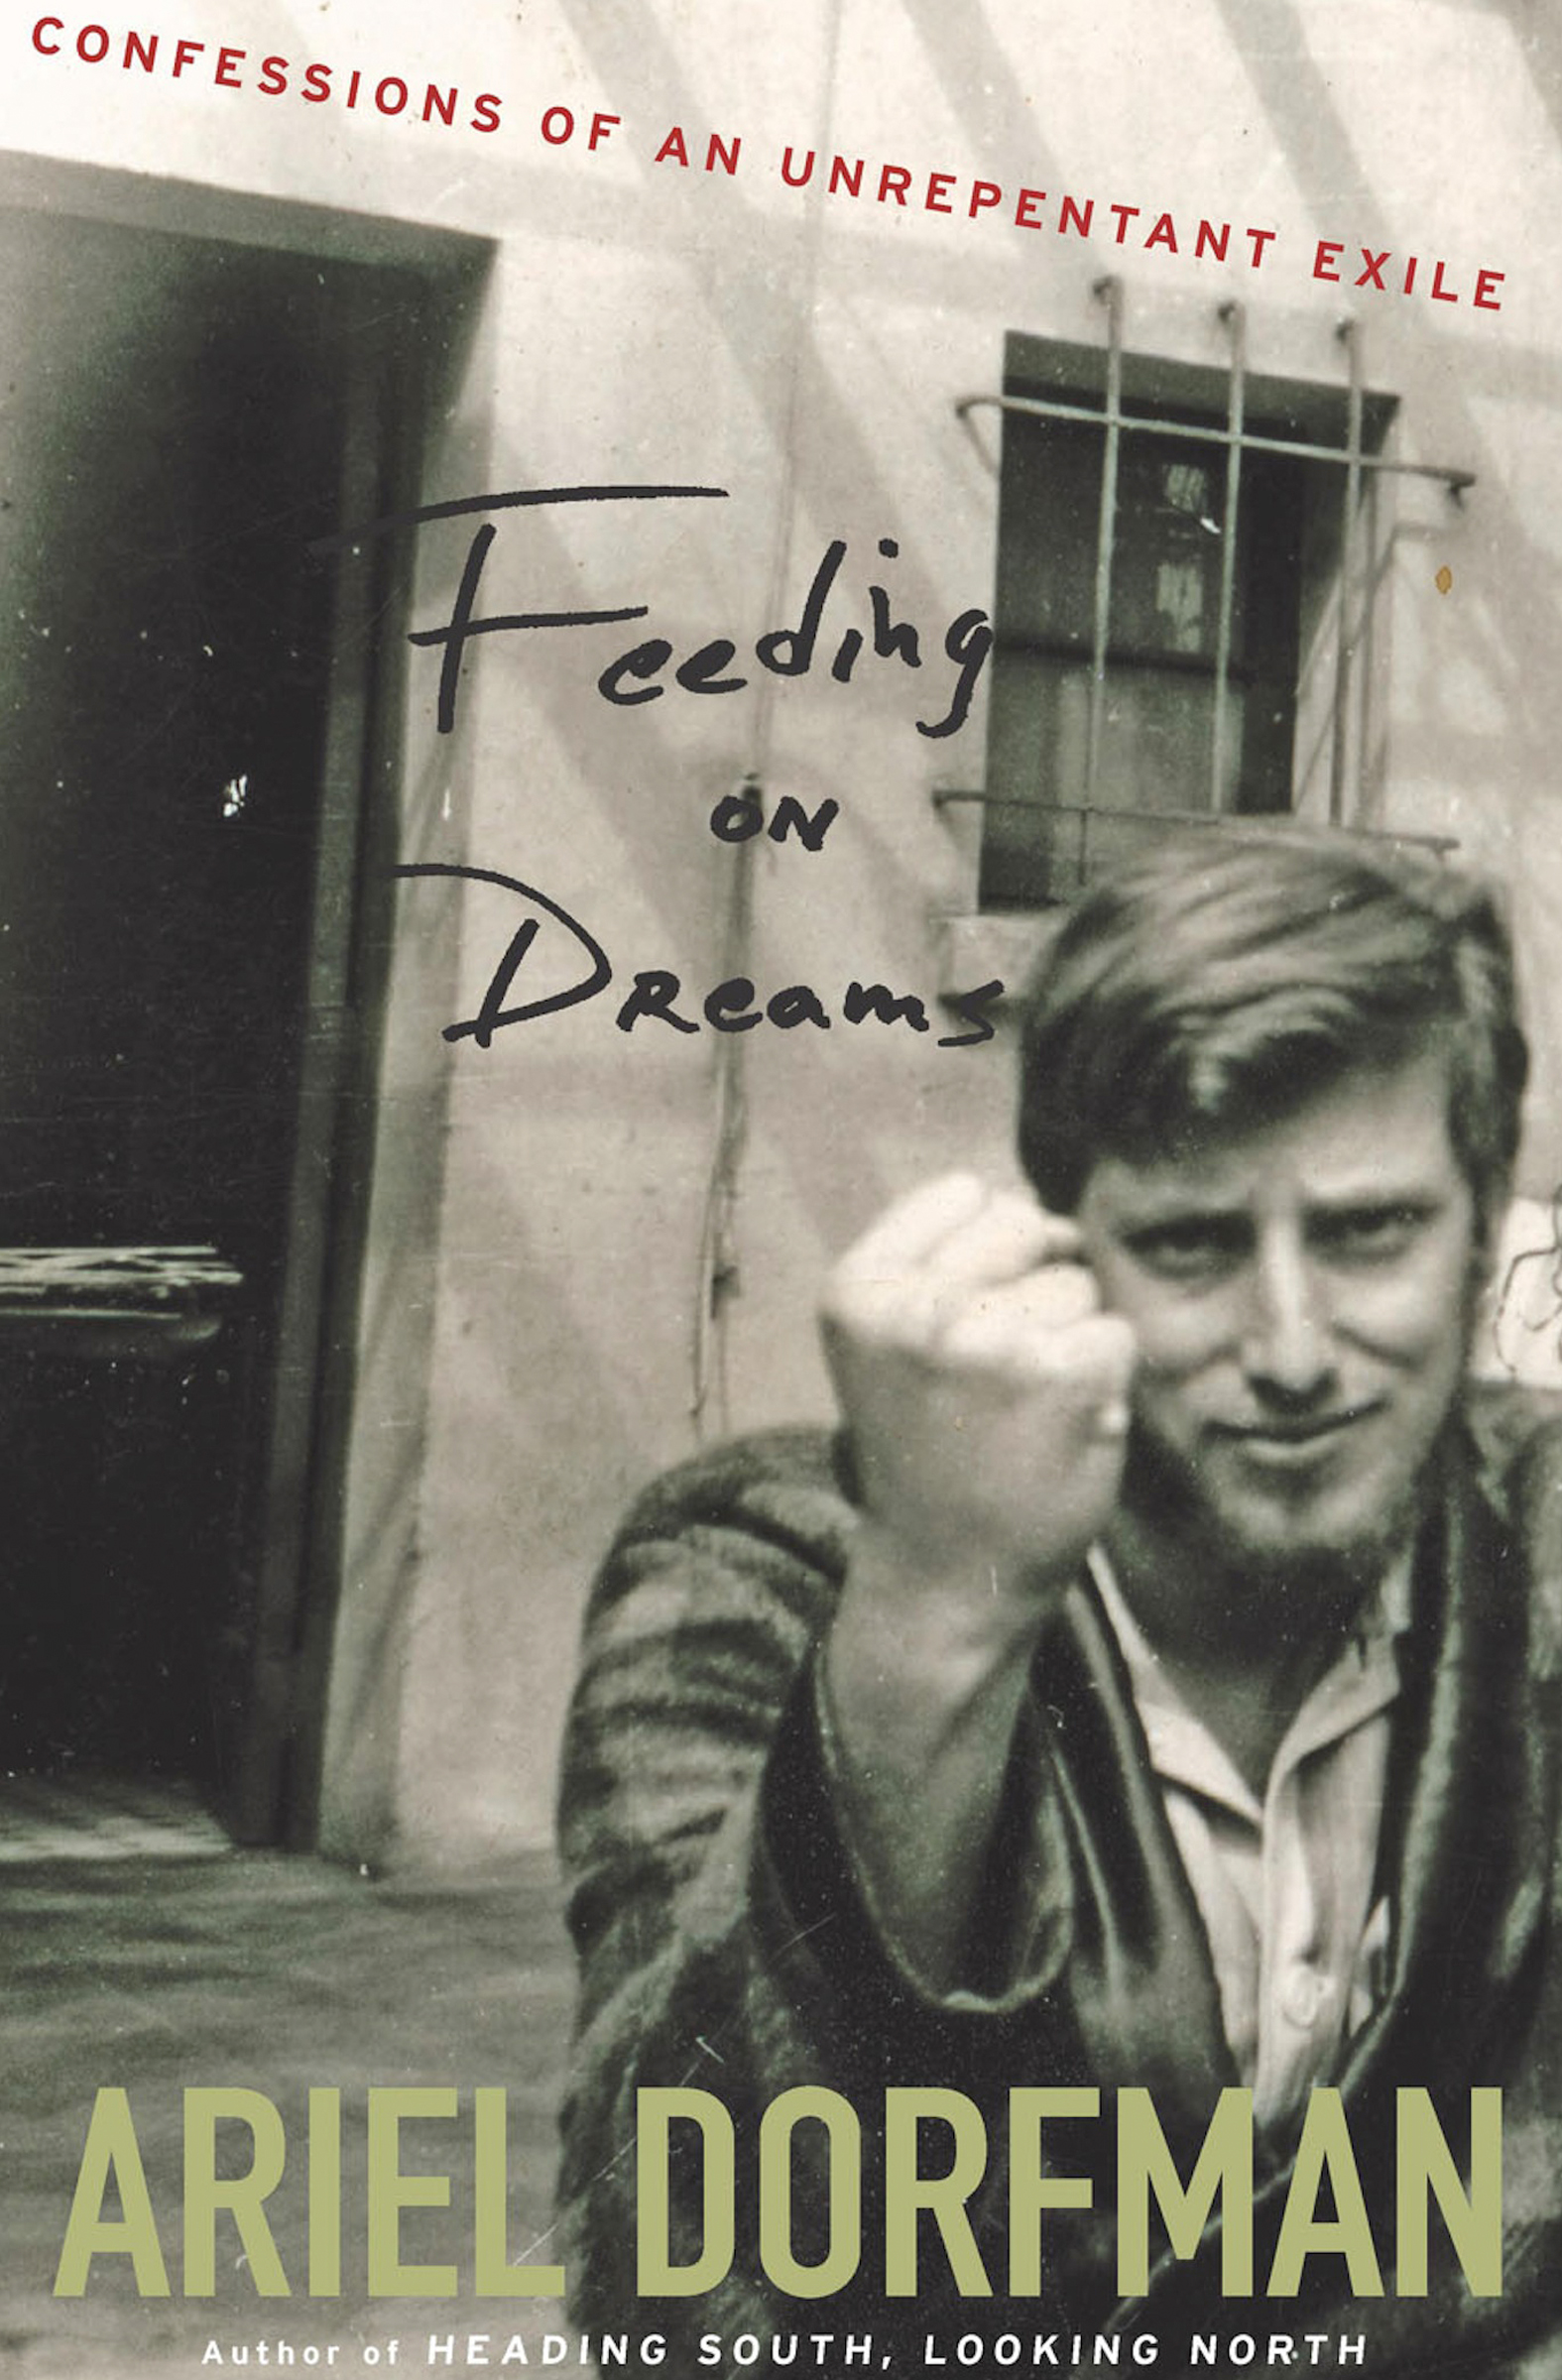 Feeding on Dreams Confessions of an Unrepentant Exile